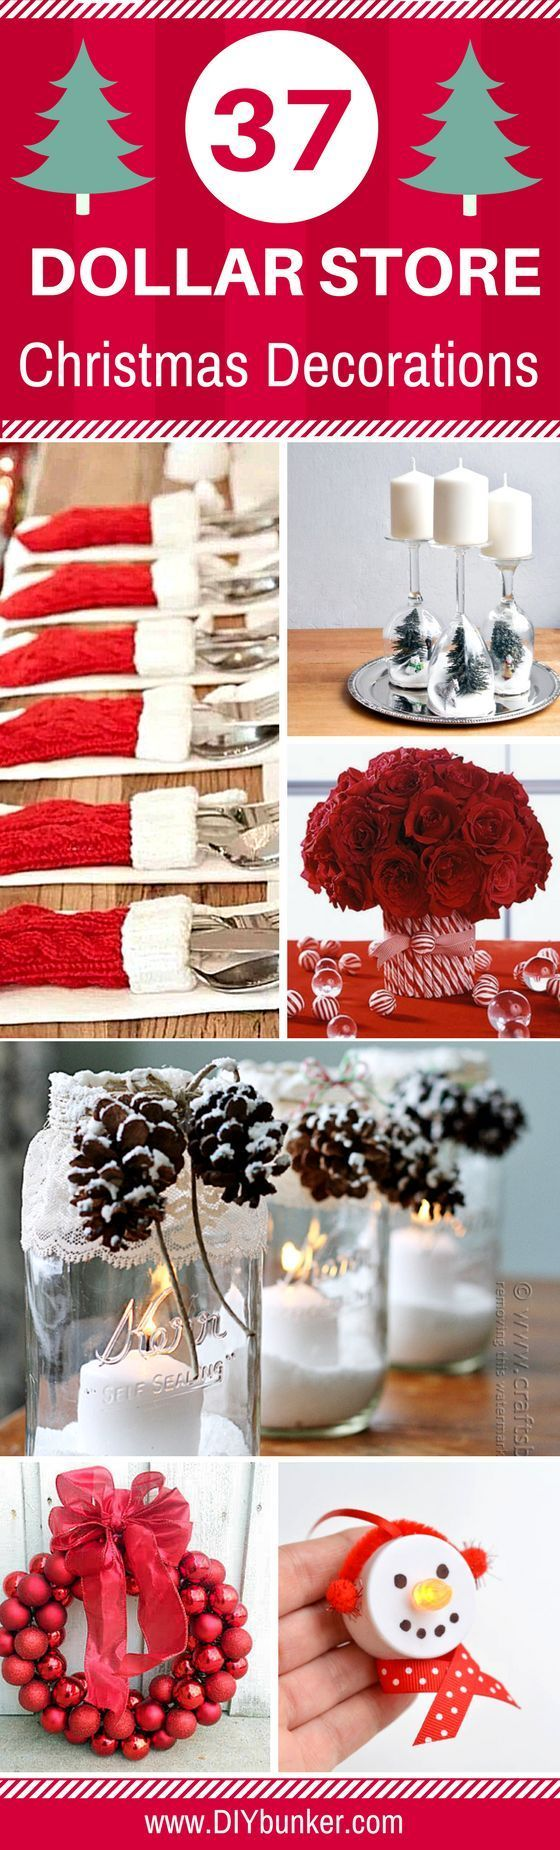 These 27 Dollar Store Christmas Decoration Ideas Are PERFECTION! I love how quick, easy and cheap these are to DIY.